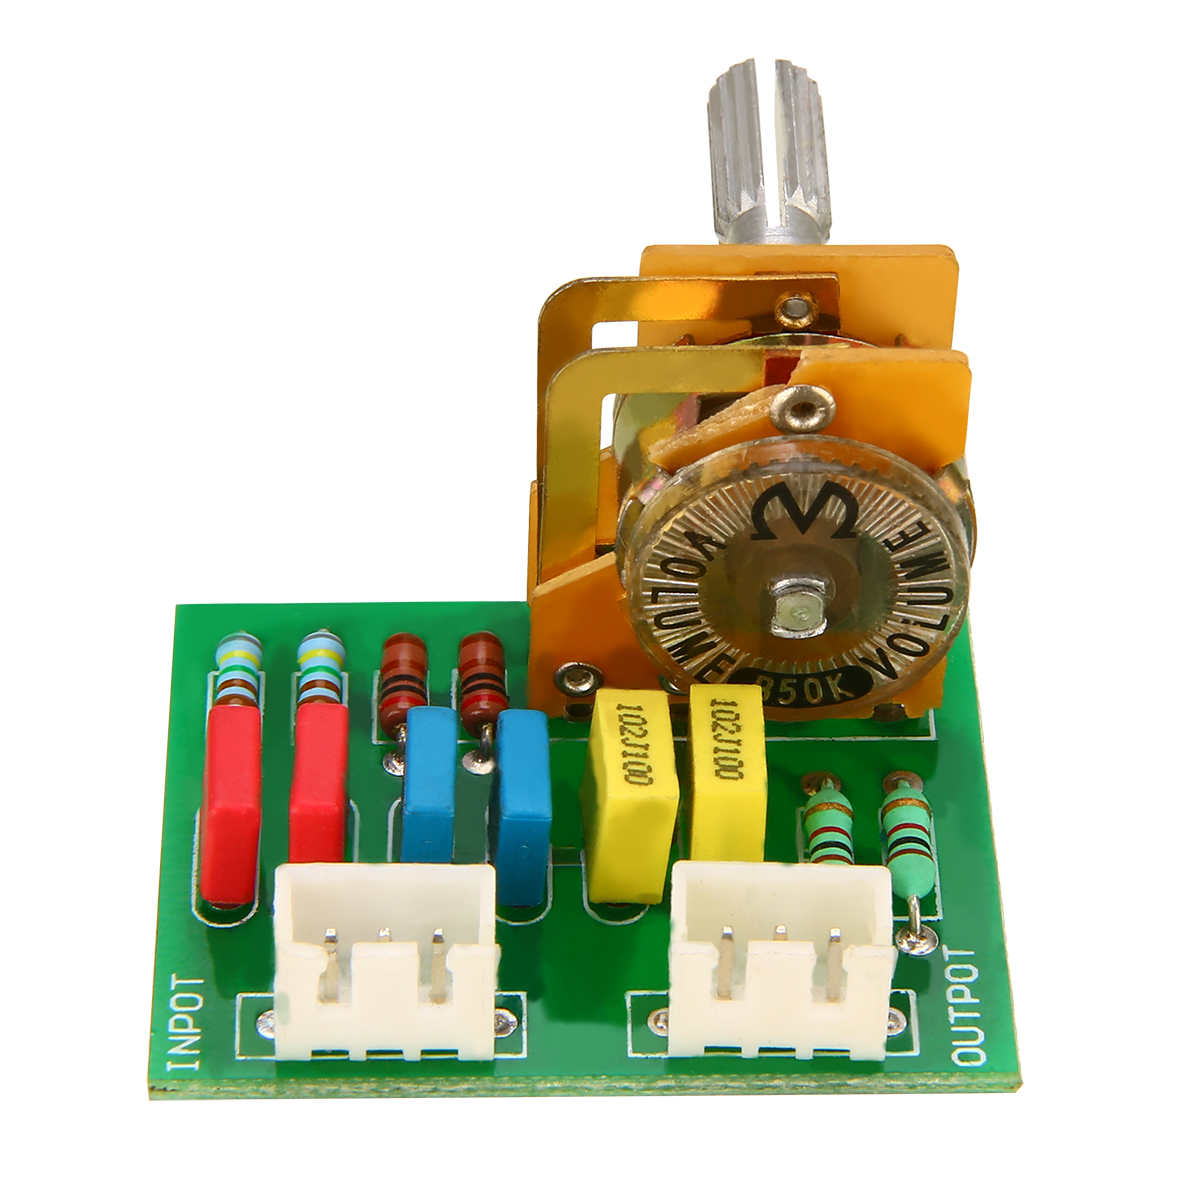 16 Type 50k 8 Pin Amplifier Preamp Passive Tone Board High Quality Control Circuit Volume Sound Adjustable Module Mayitr In From Consumer Electronics On